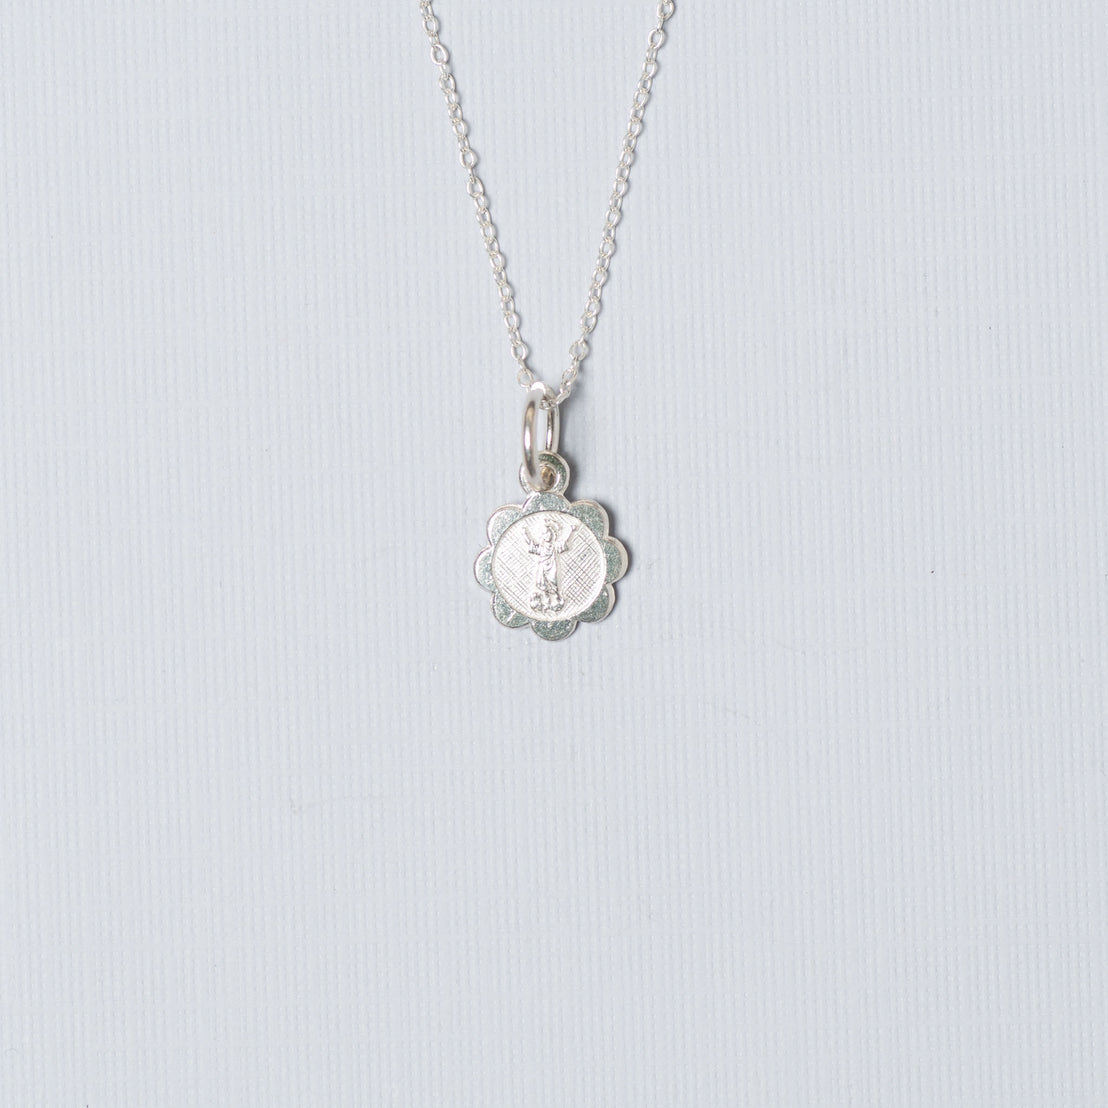 Sterling Silver Open Arms Charm Necklace